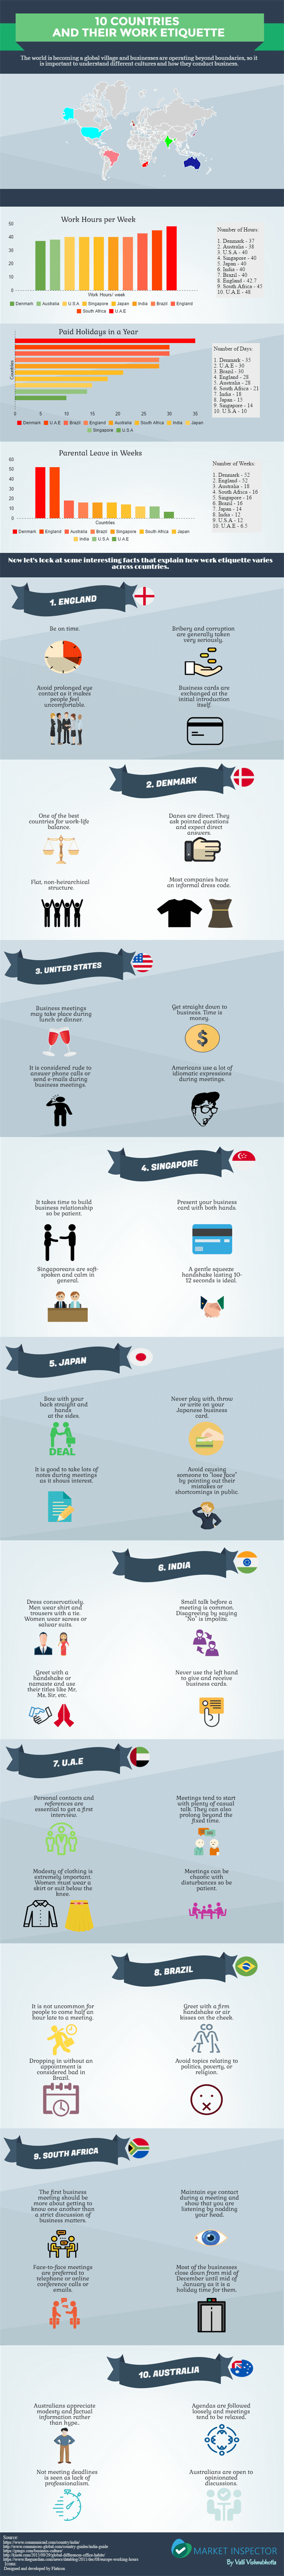 10 Countries And Their Work Etiquette #Infographic